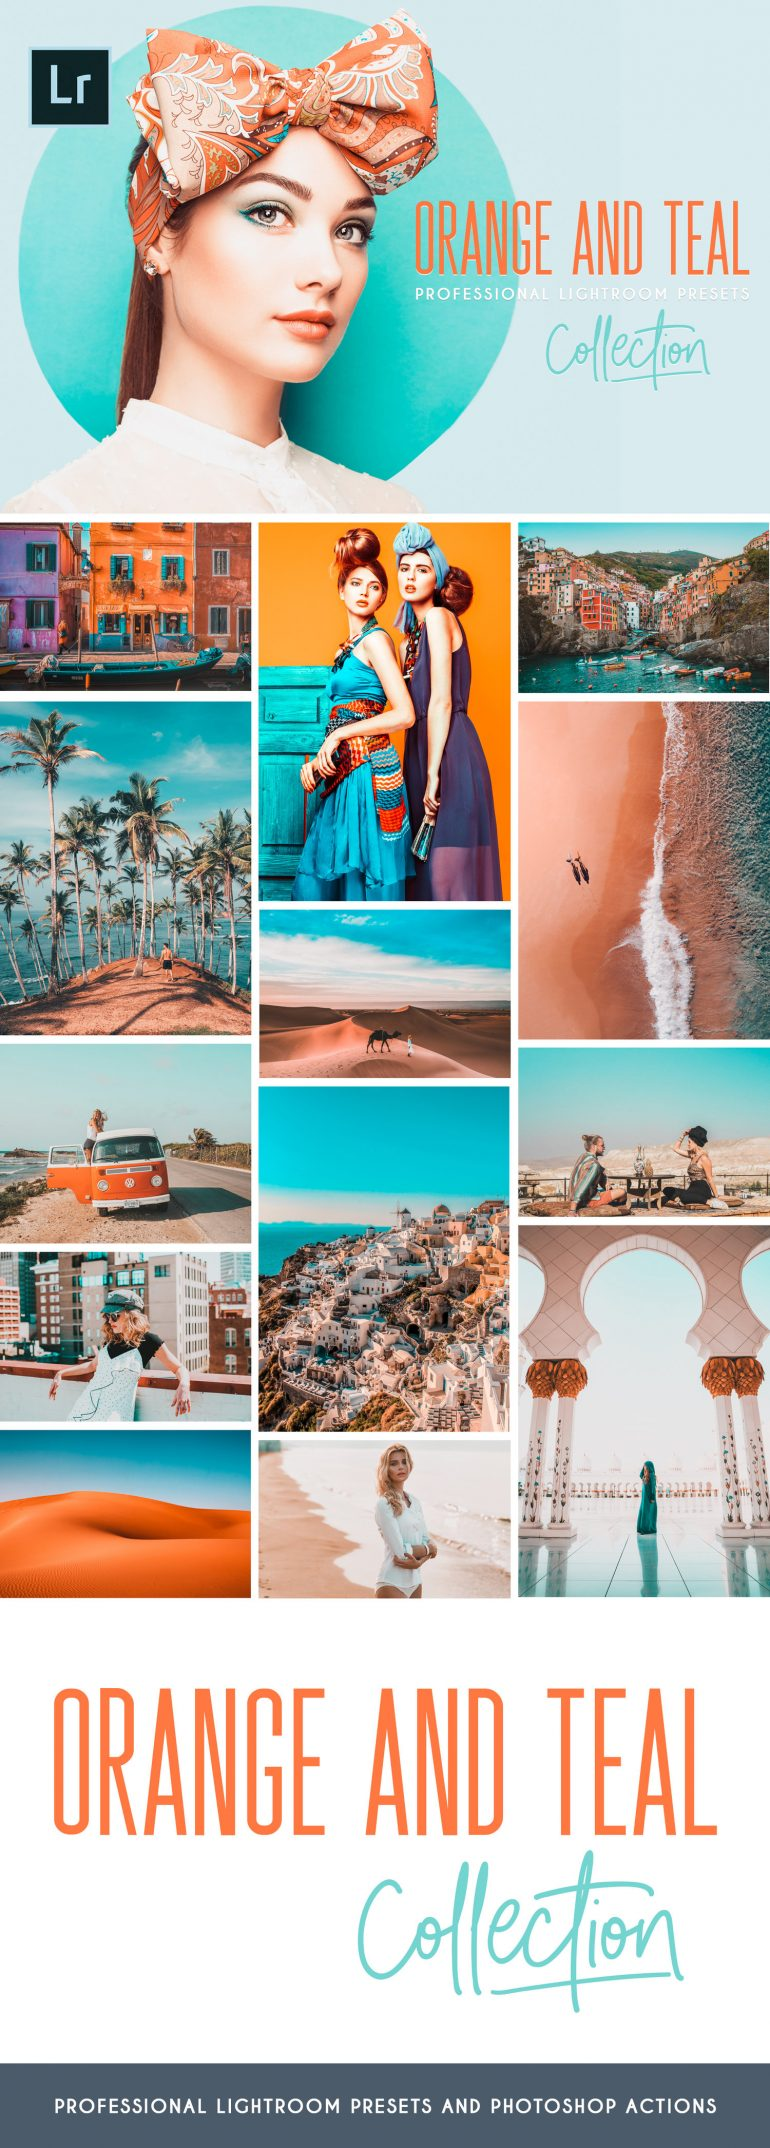 ORANGE AND TEAL LIGHTROOM PRESETS, PHOTOSHOP ACTIONS AND ACR PRESETS